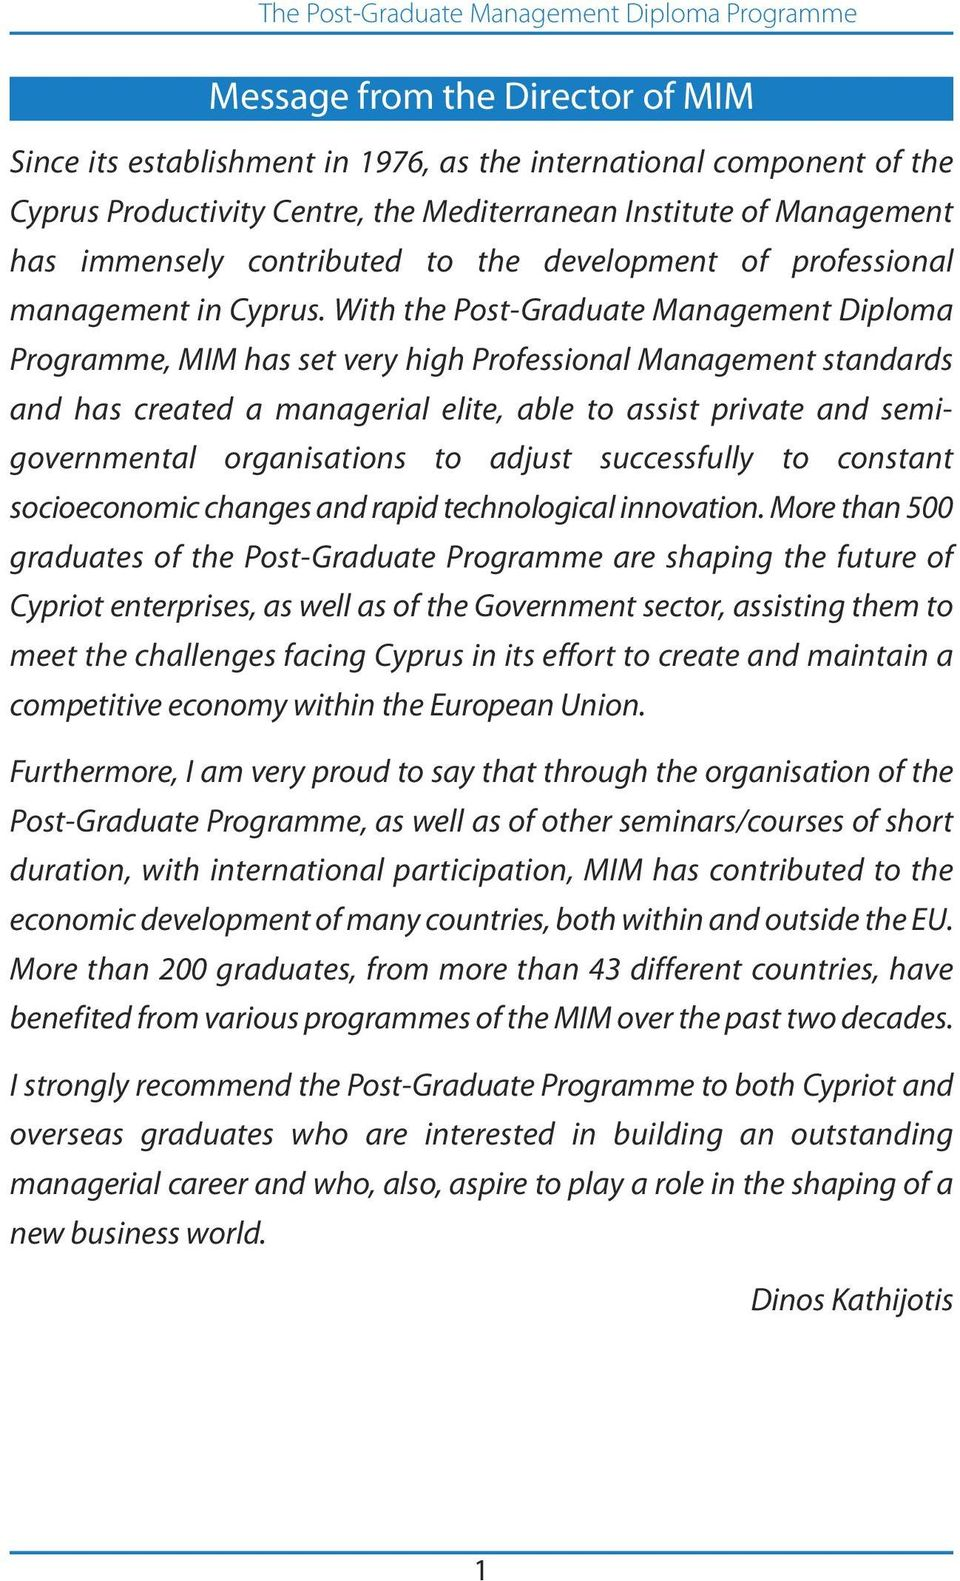 With the Post-Graduate Management Diploma Programme, MIM has set very high Professional Management standards and has created a managerial elite, able to assist private and semigovernmental